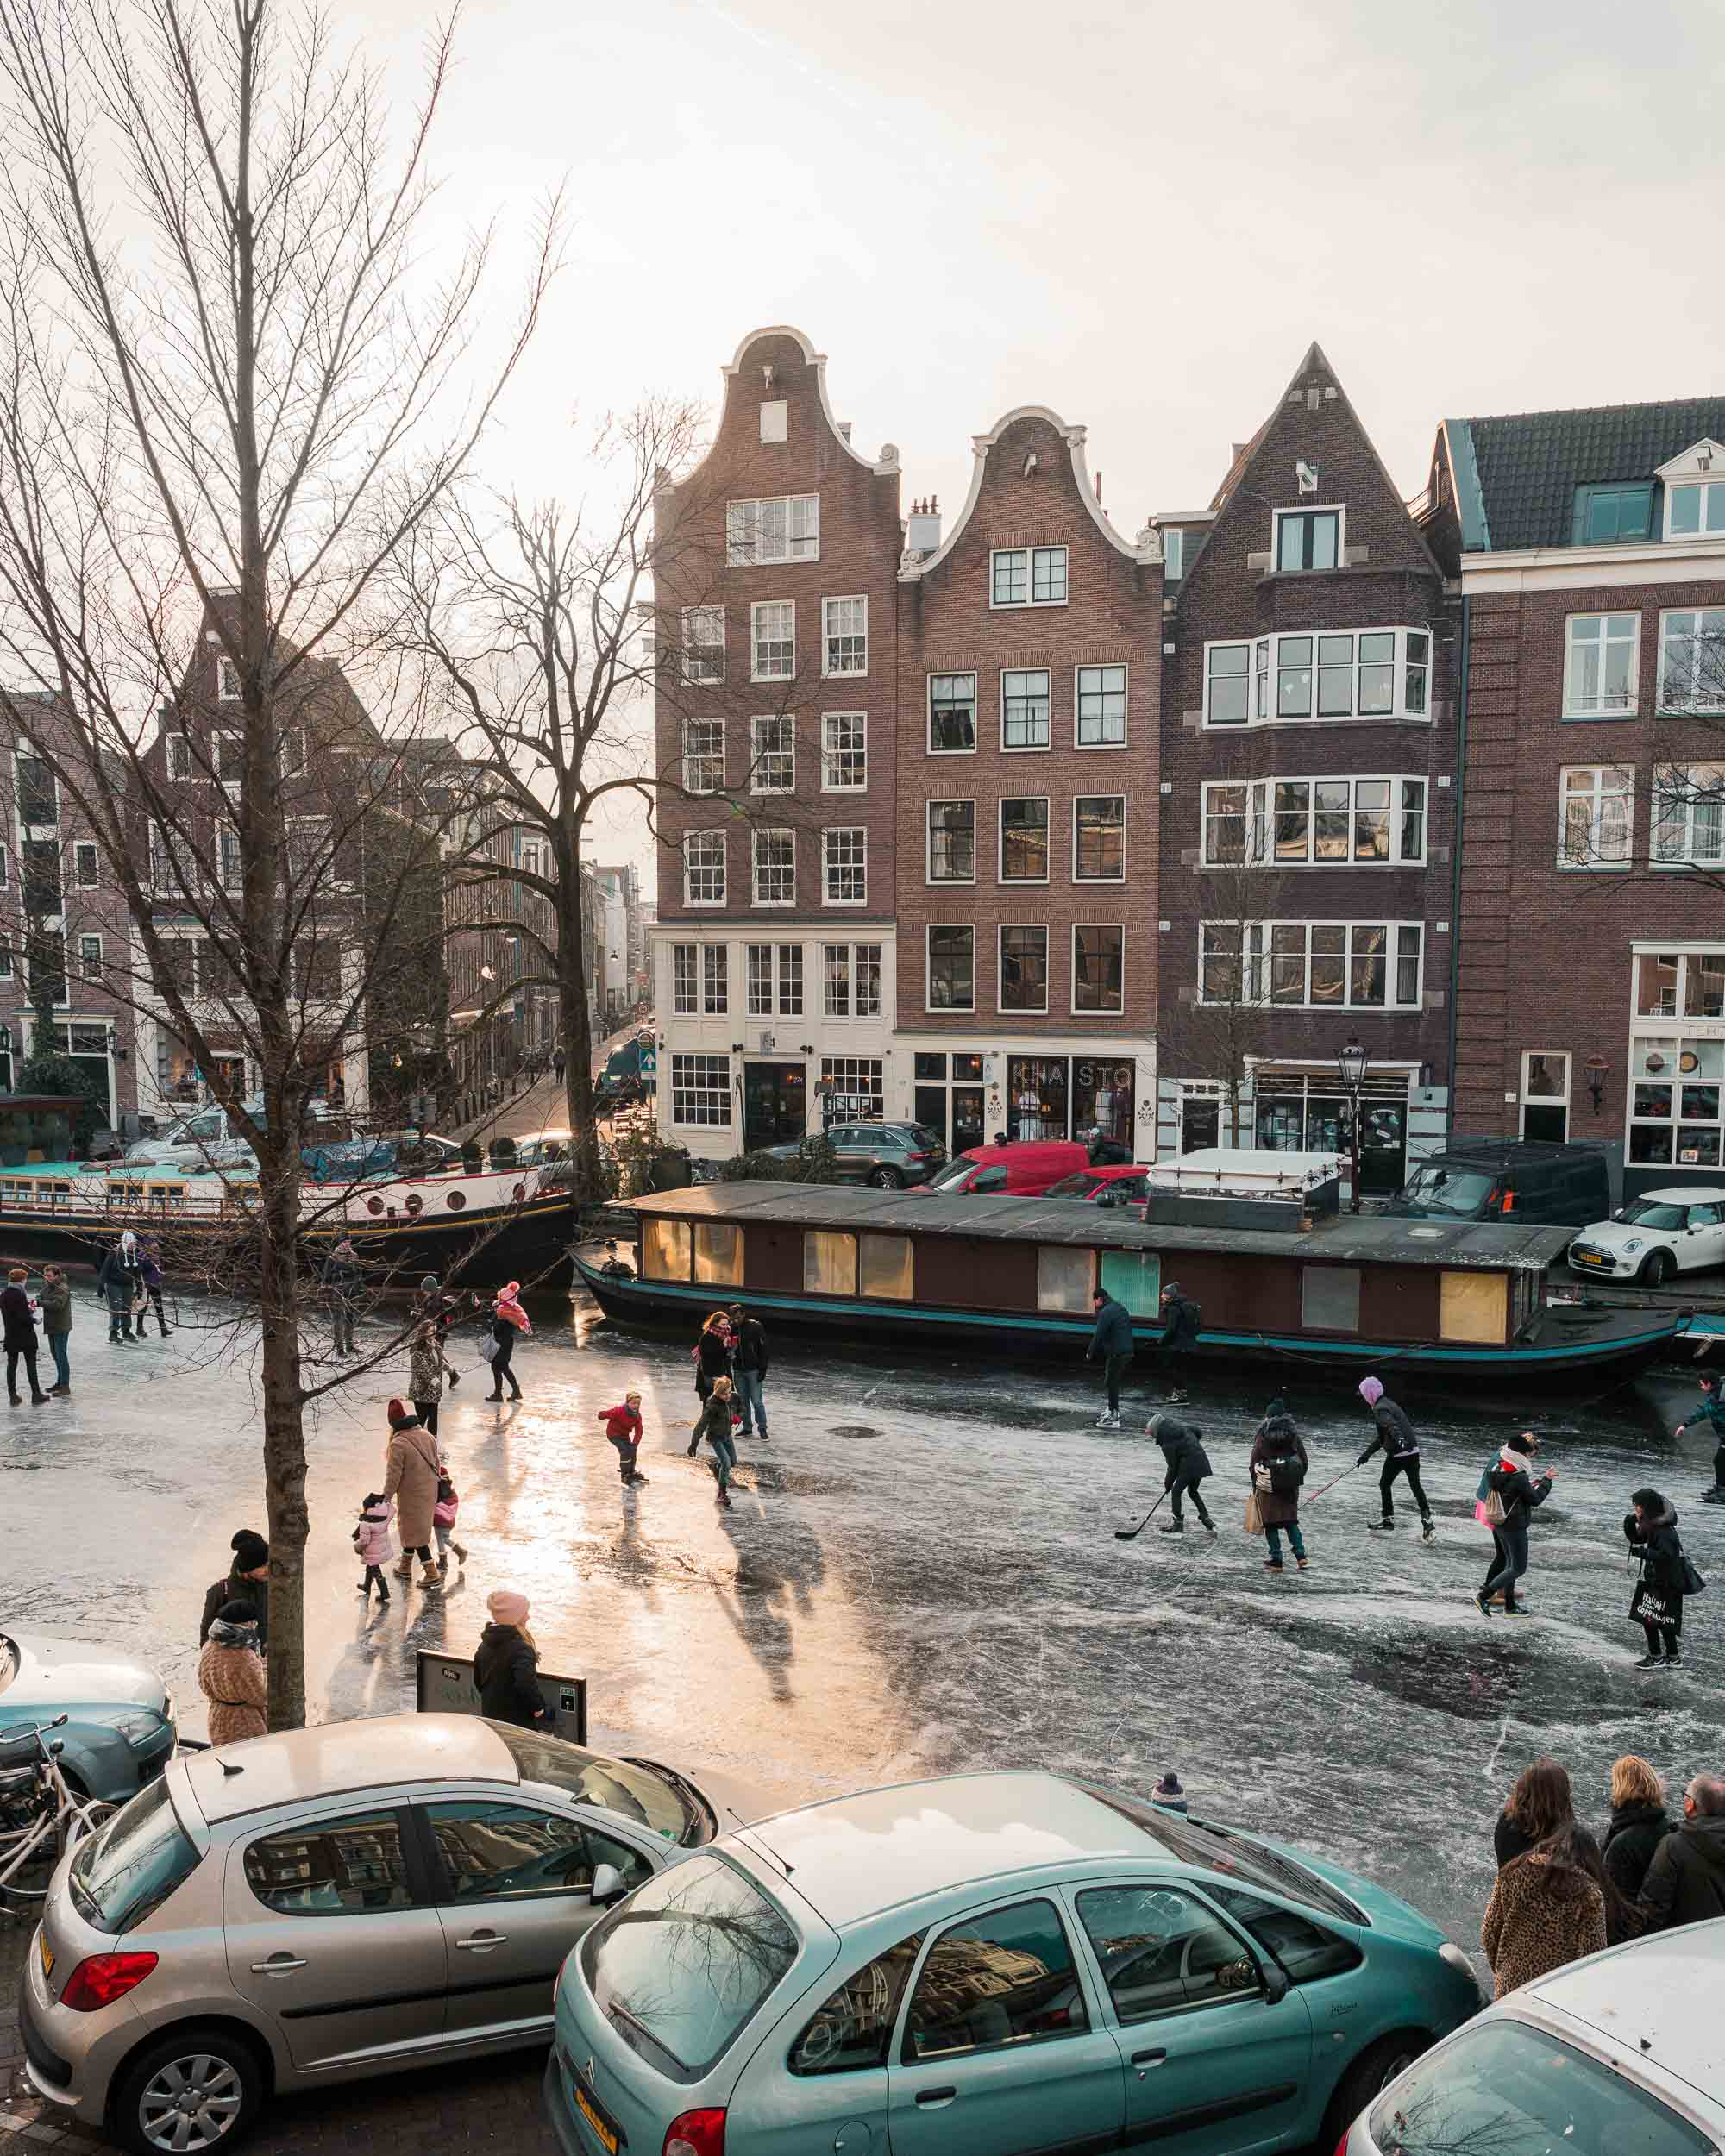 Ice skaters on the frozen canals in Amsterdam The Netherlands